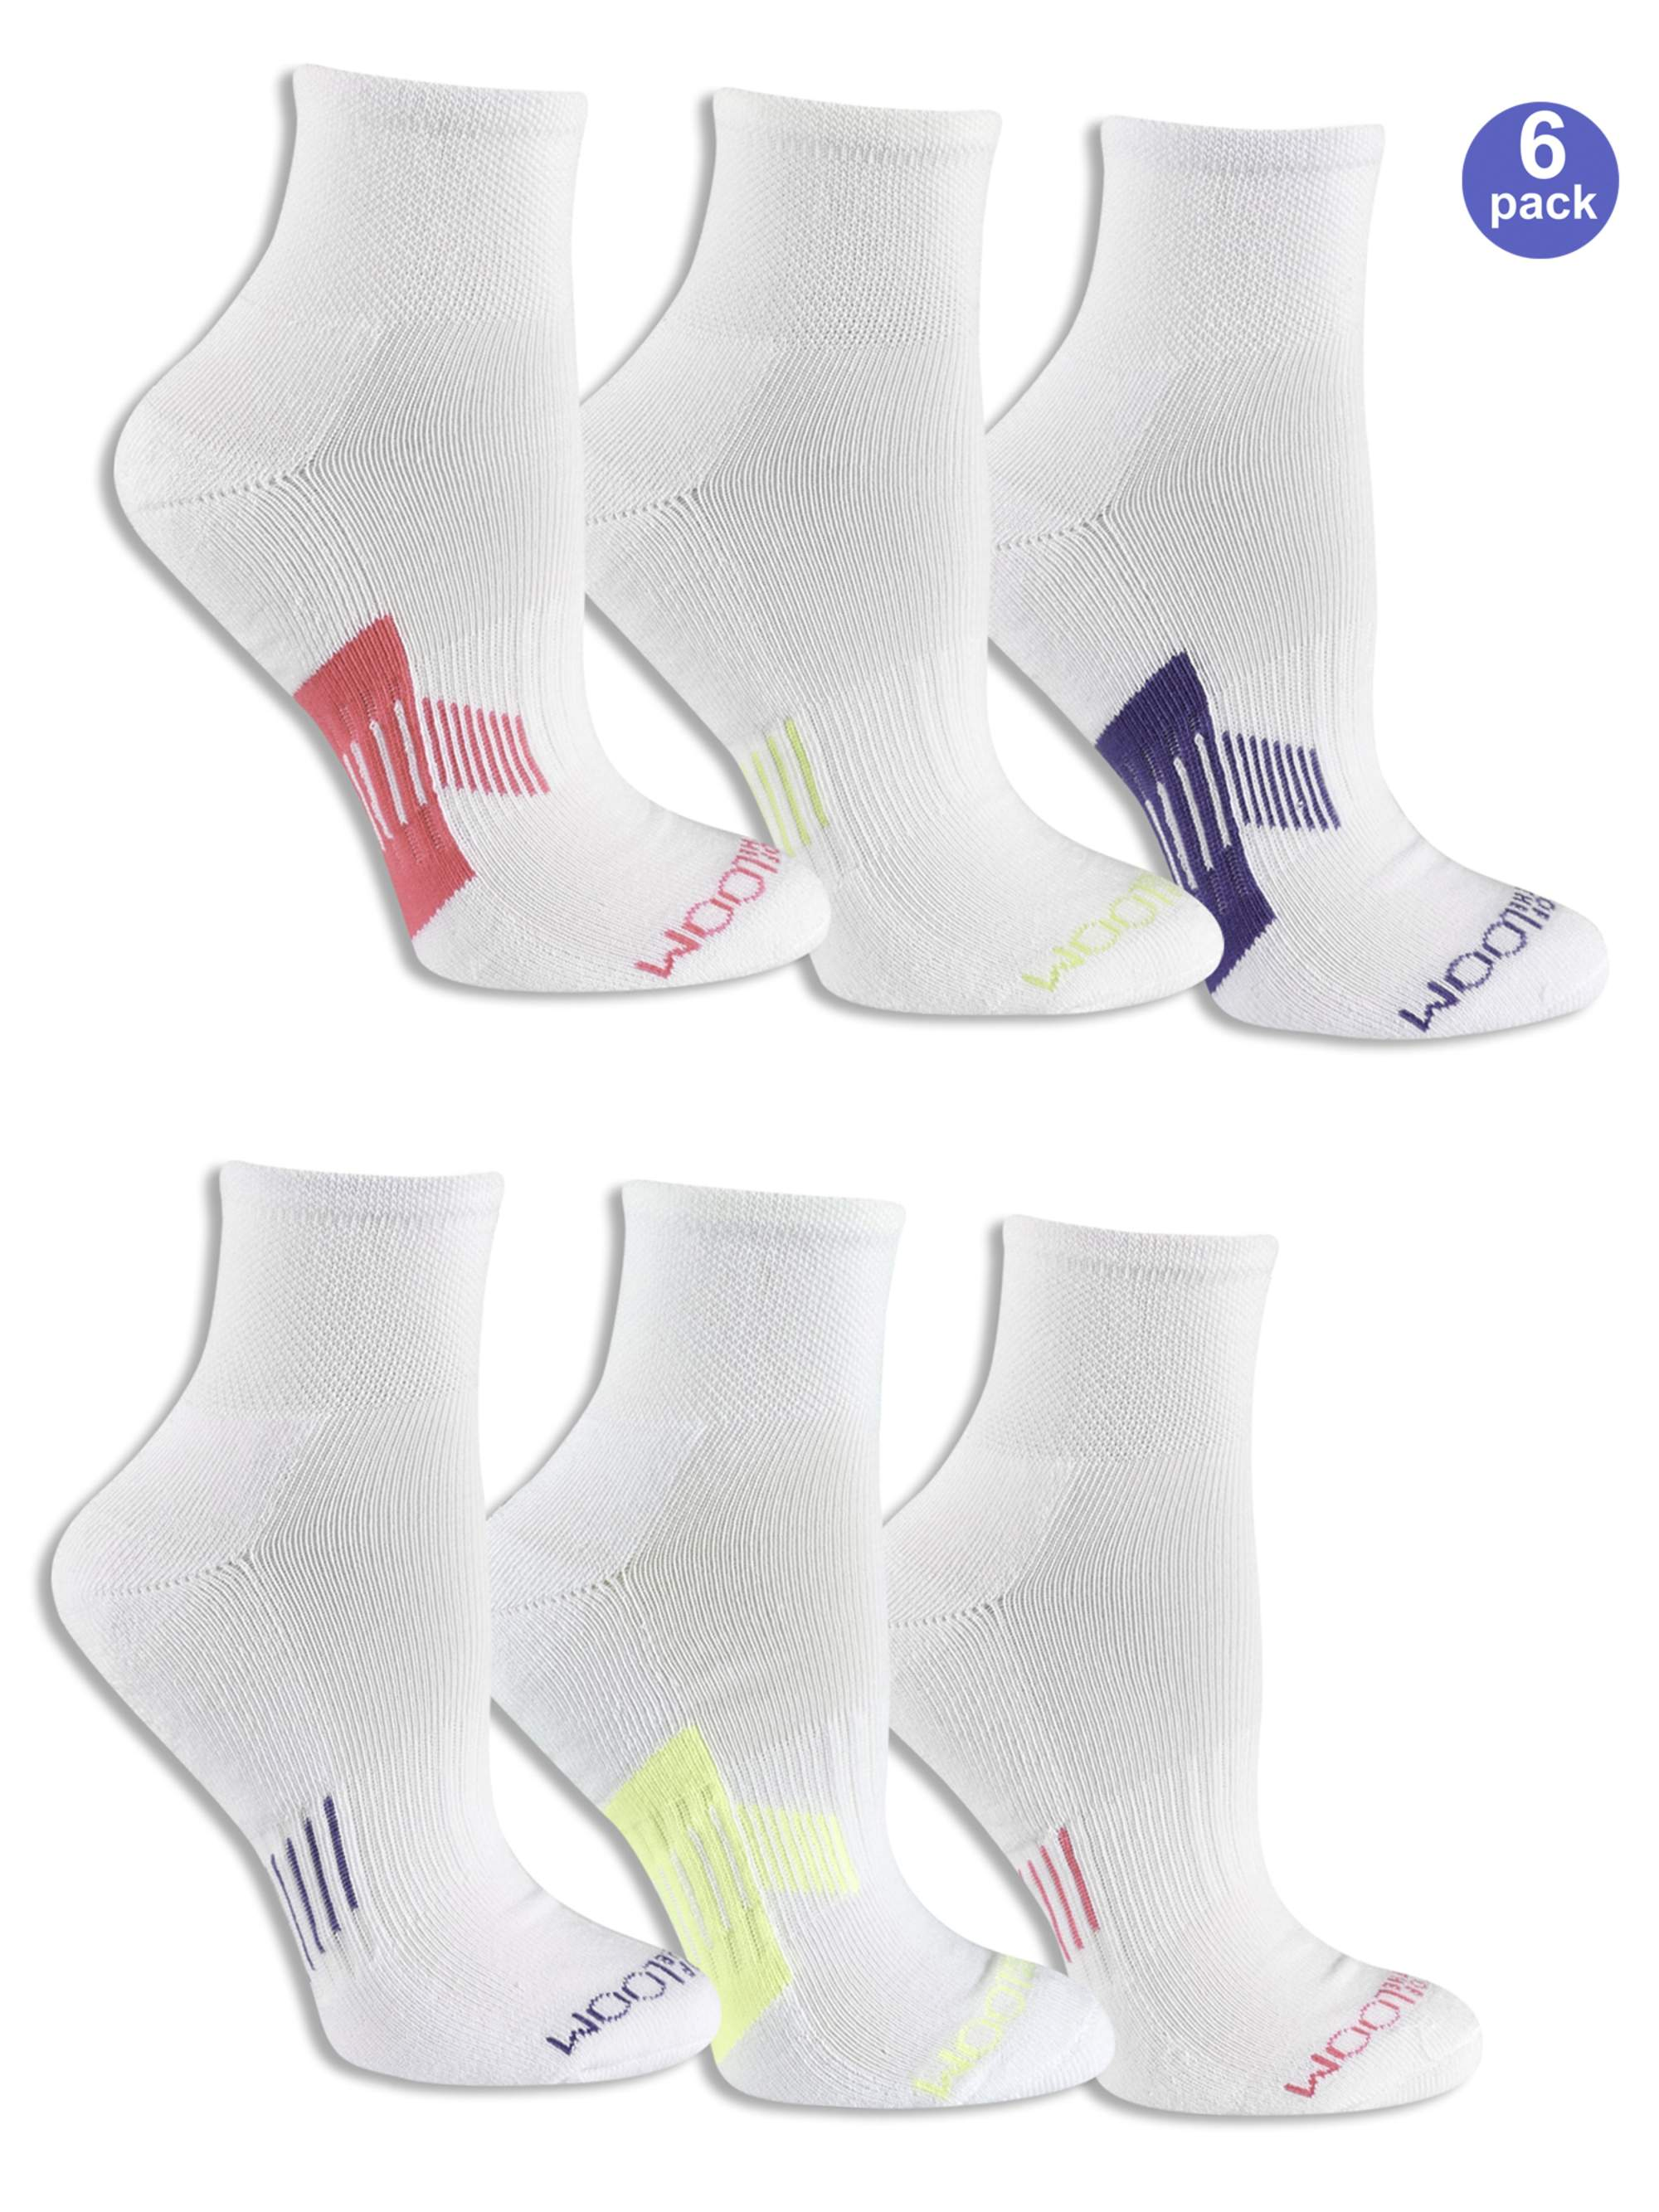 Women's Everyday Active Ankle Socks 6 Pack